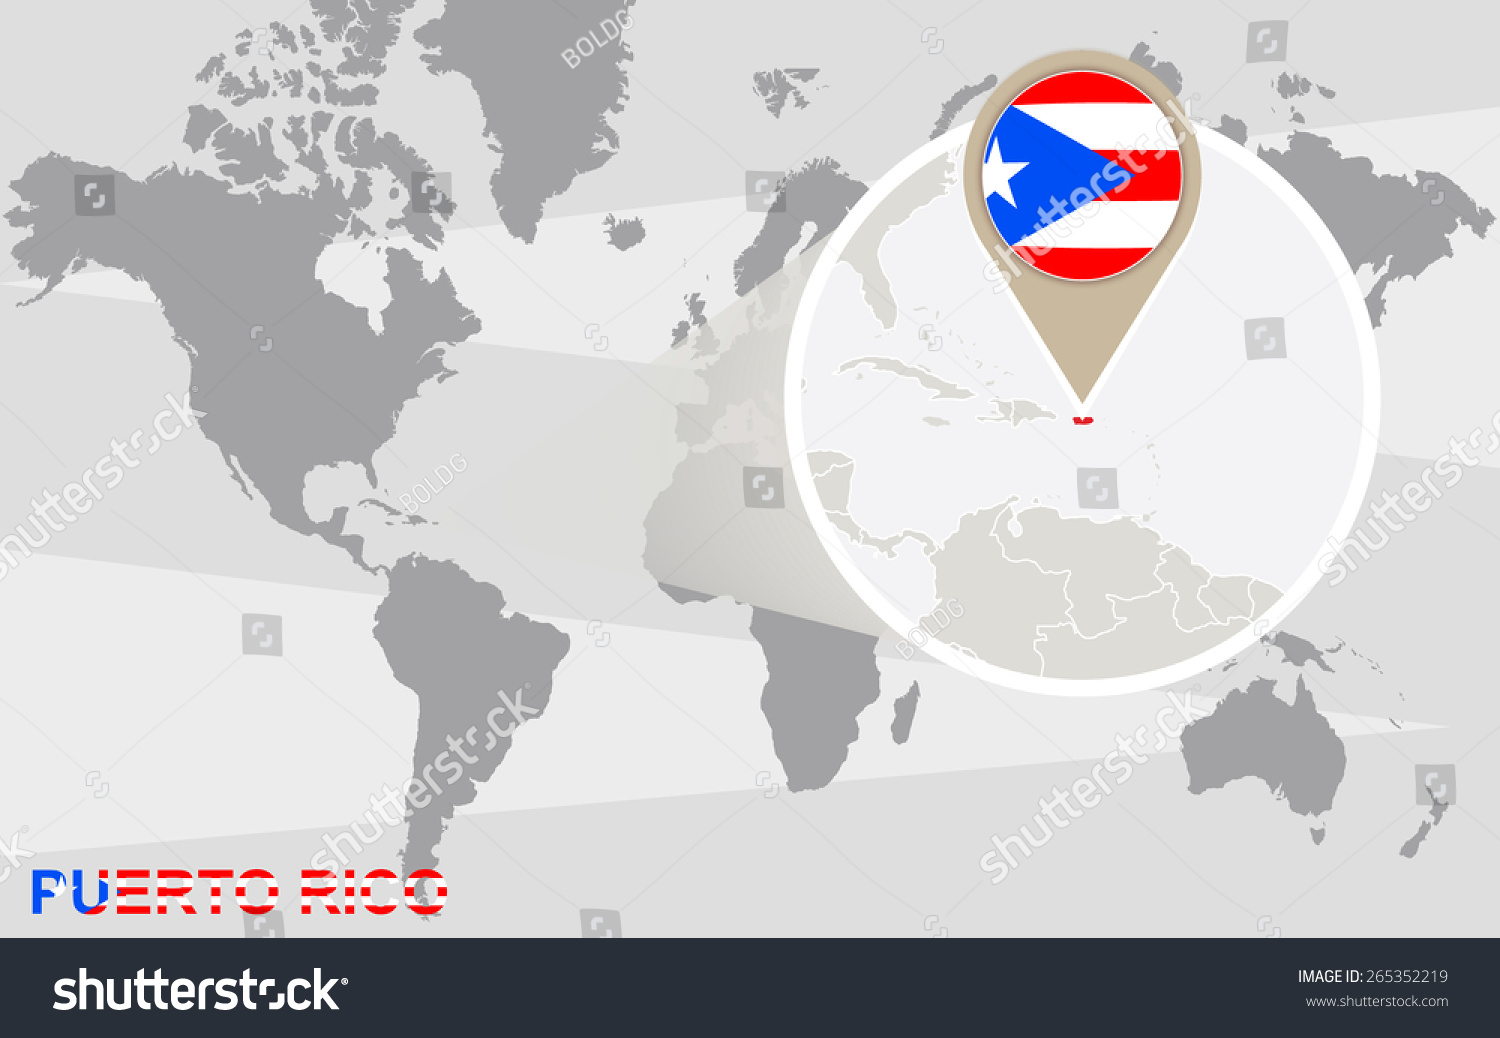 World Map Magnified Puerto Rico Puerto Stock Vector (Royalty Free ...